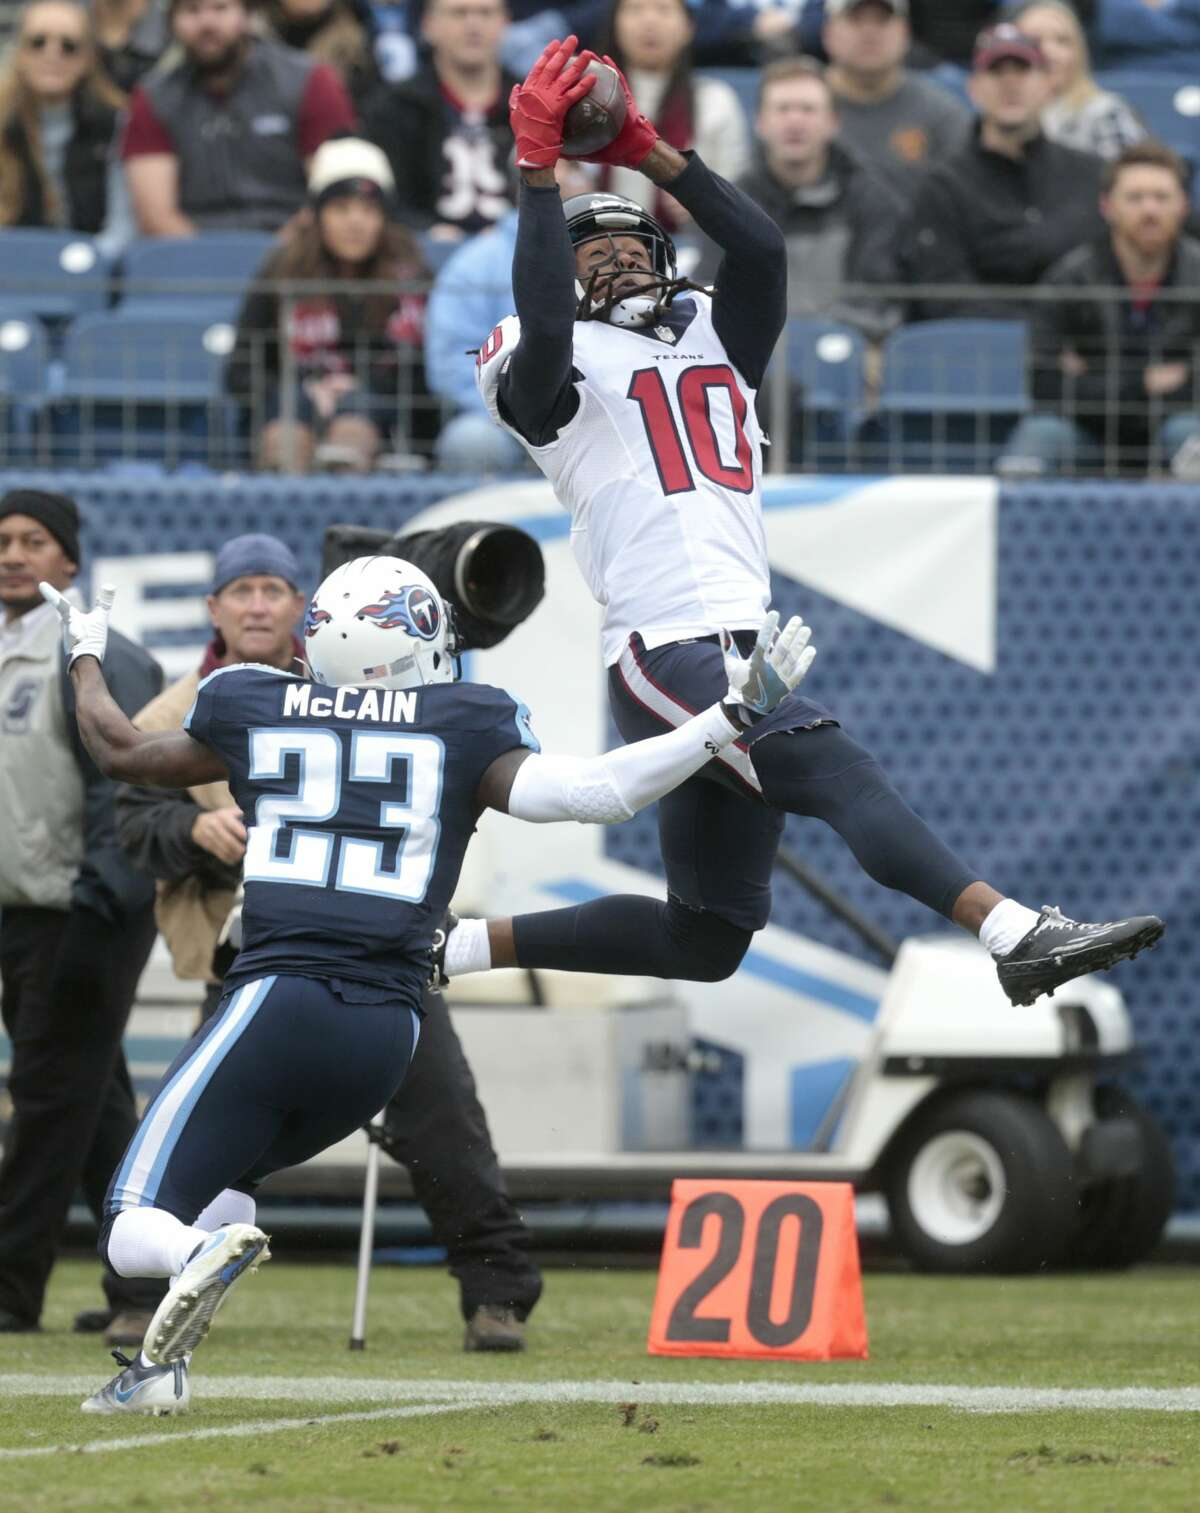 Houston Texans wide receiver DeAndre Hopkins (10) leaps over Tennessee Titans cornerback Brice McCain (23) in an attempt to make a catch, coming down out of bounds for an incomplete pass, during the second quarter of an NFL football game at Nissan Stadium on Sunday, Jan. 1, 2017, in Nashville. ( Brett Coomer / Houston Chronicle )